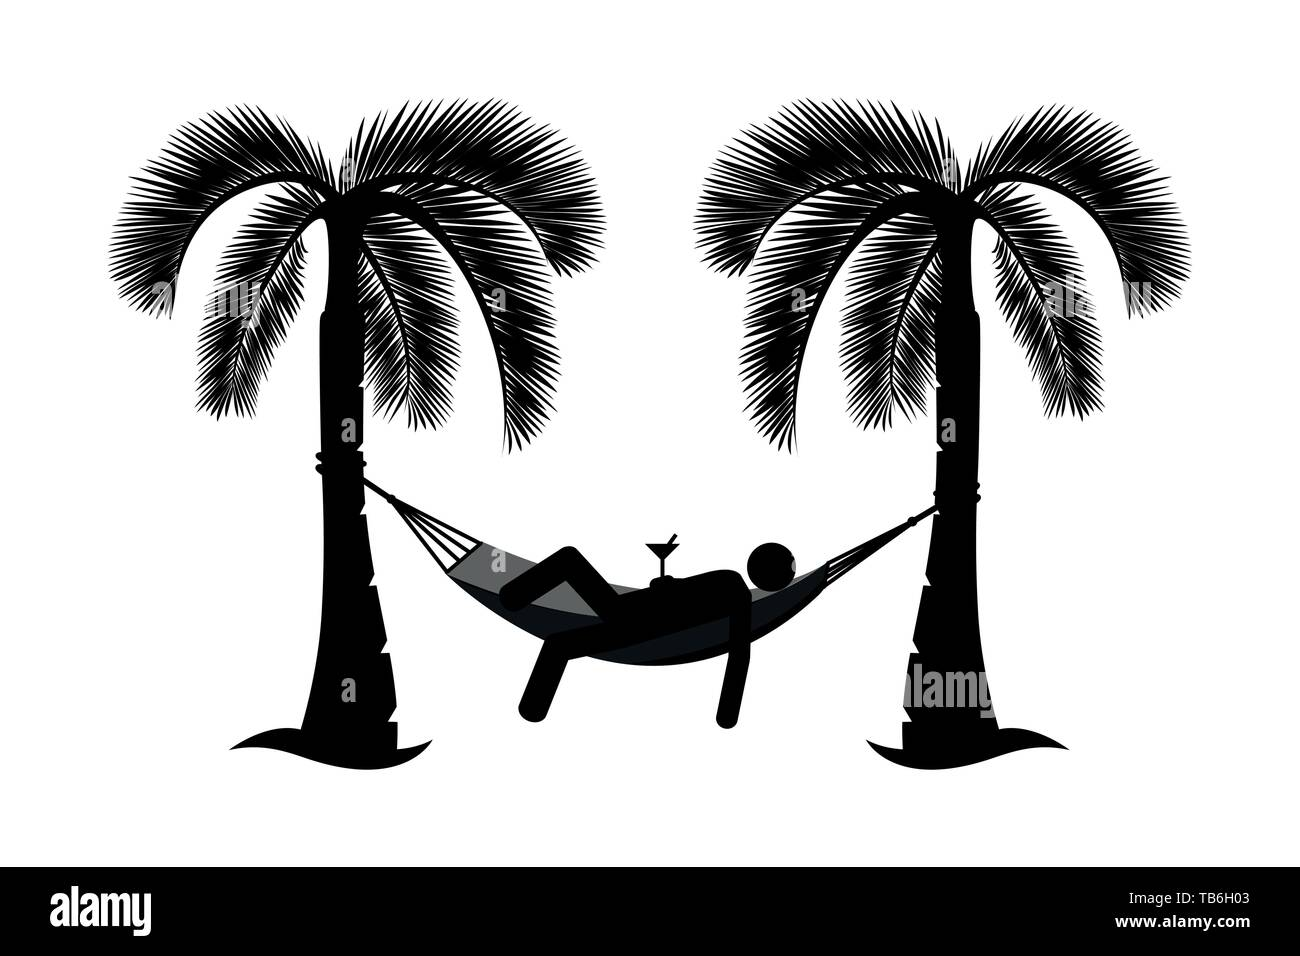 man in a hammock between palms pictogram isolated on white background vector illustration EPS10 - Stock Image